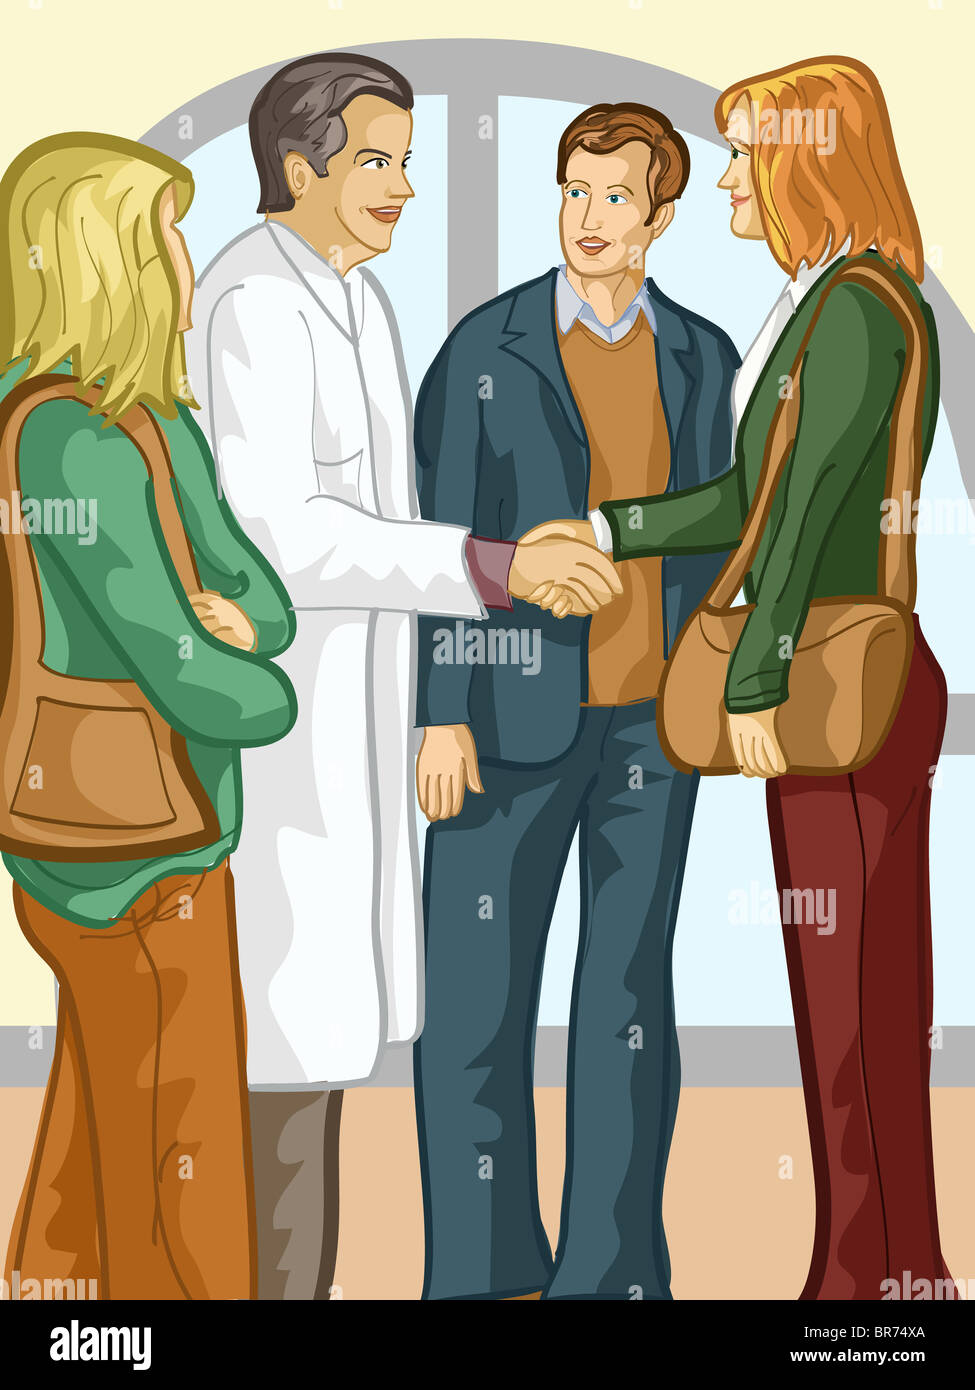 A group of family members speaking with a doctor - Stock Image